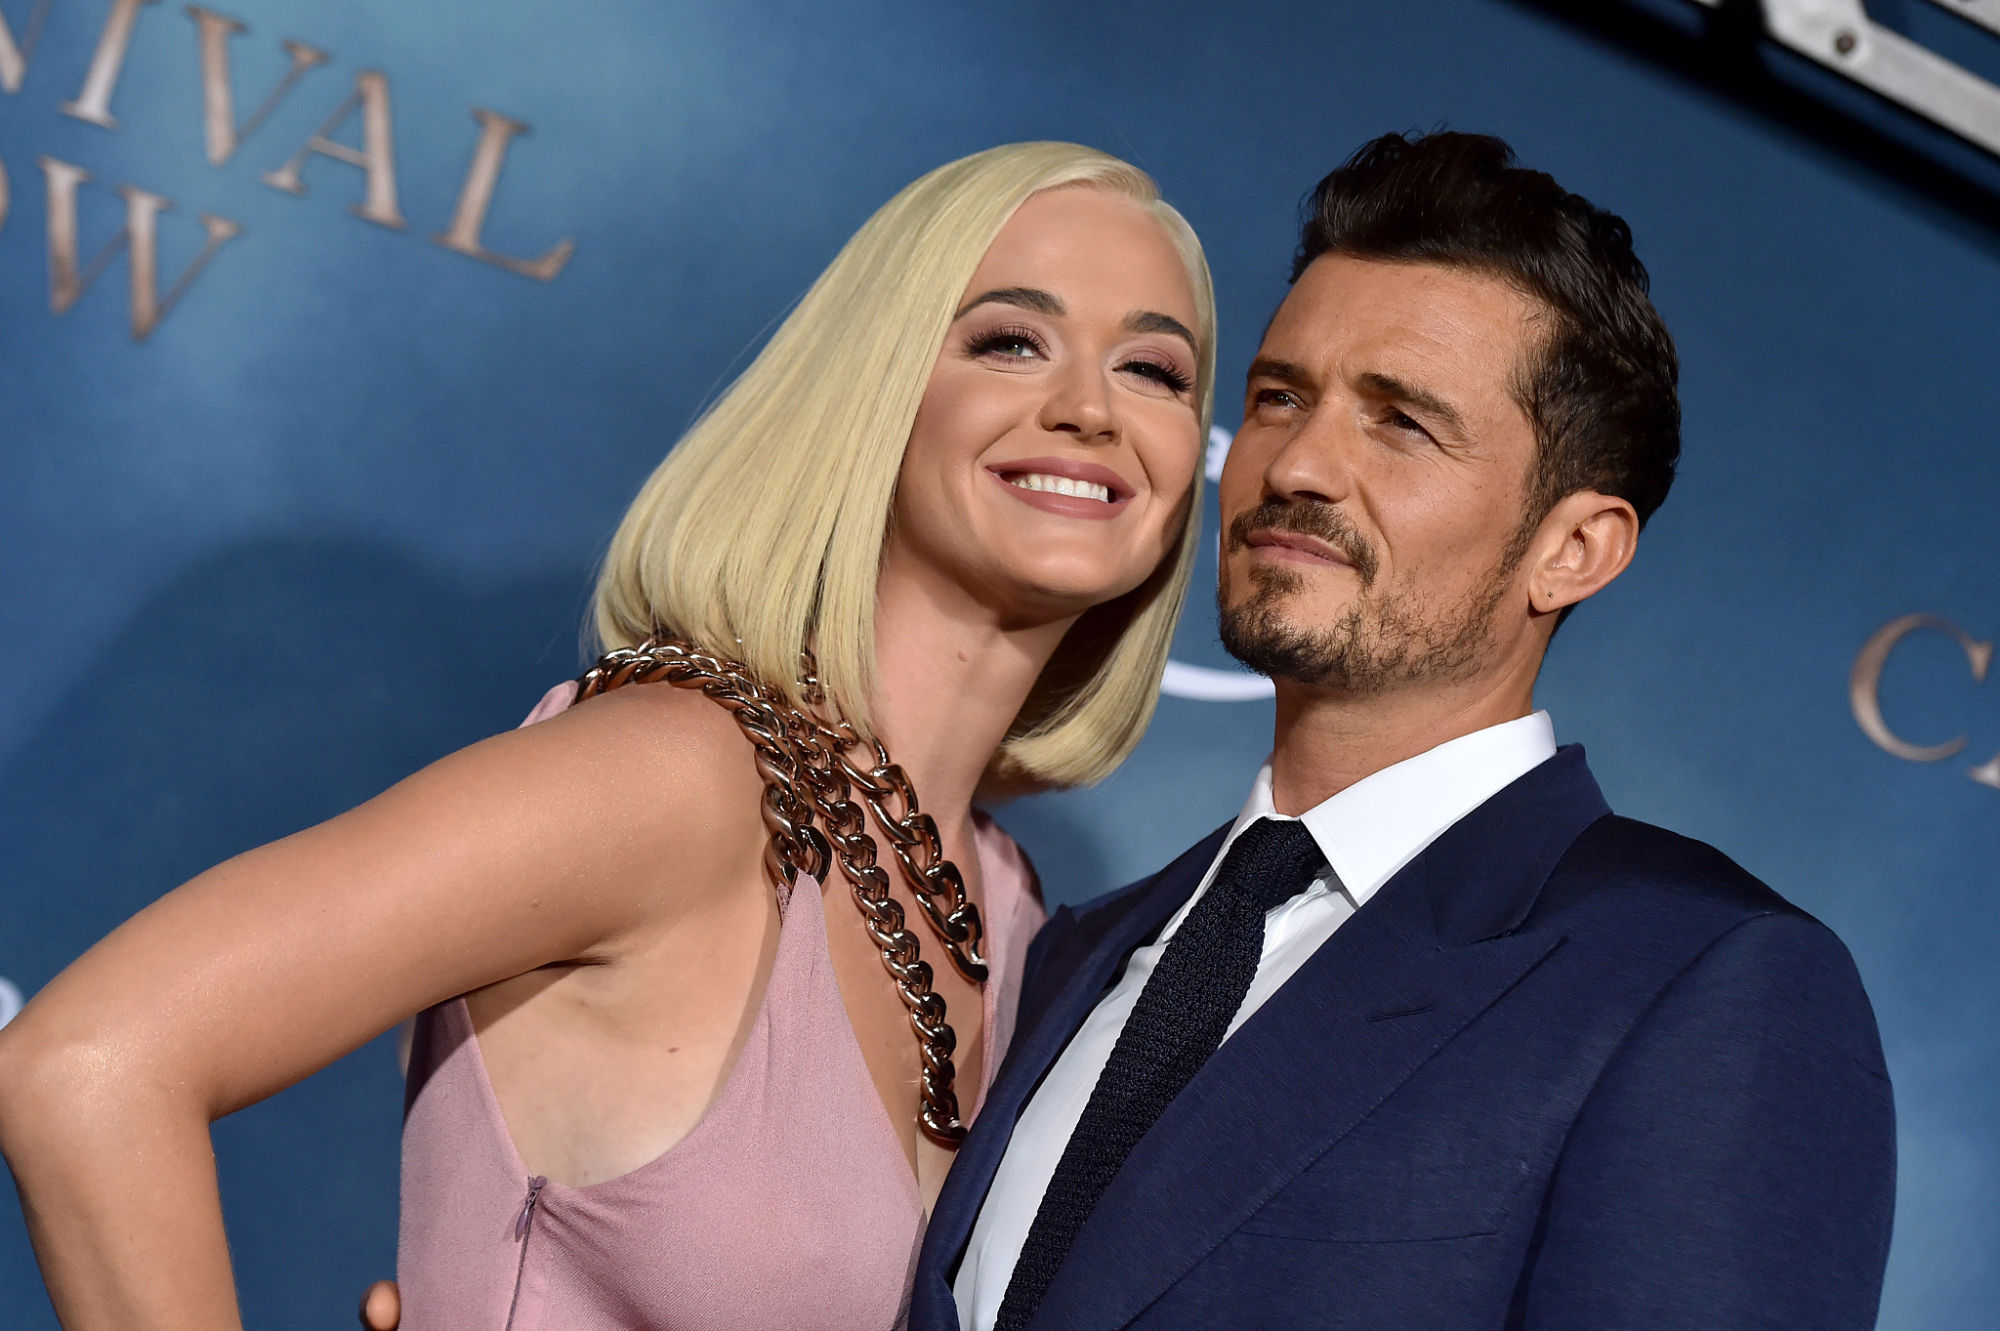 Katy Perry and Orlando Bloom have a secret wedding